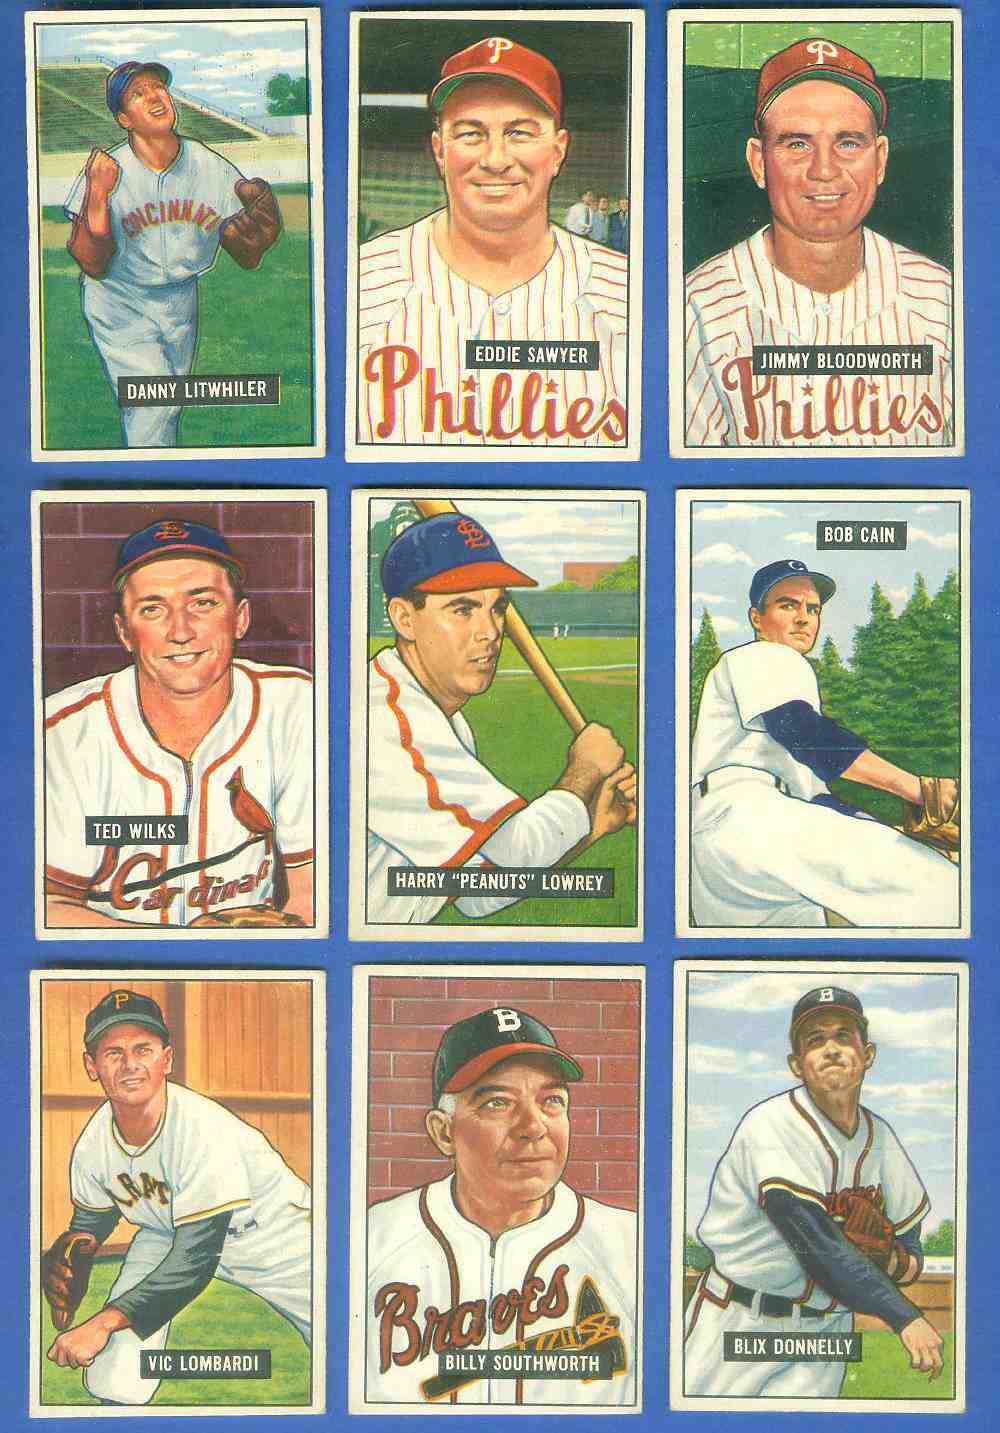 1951 Bowman #185 Jimmy Bloodworth (Phillies) Baseball cards value